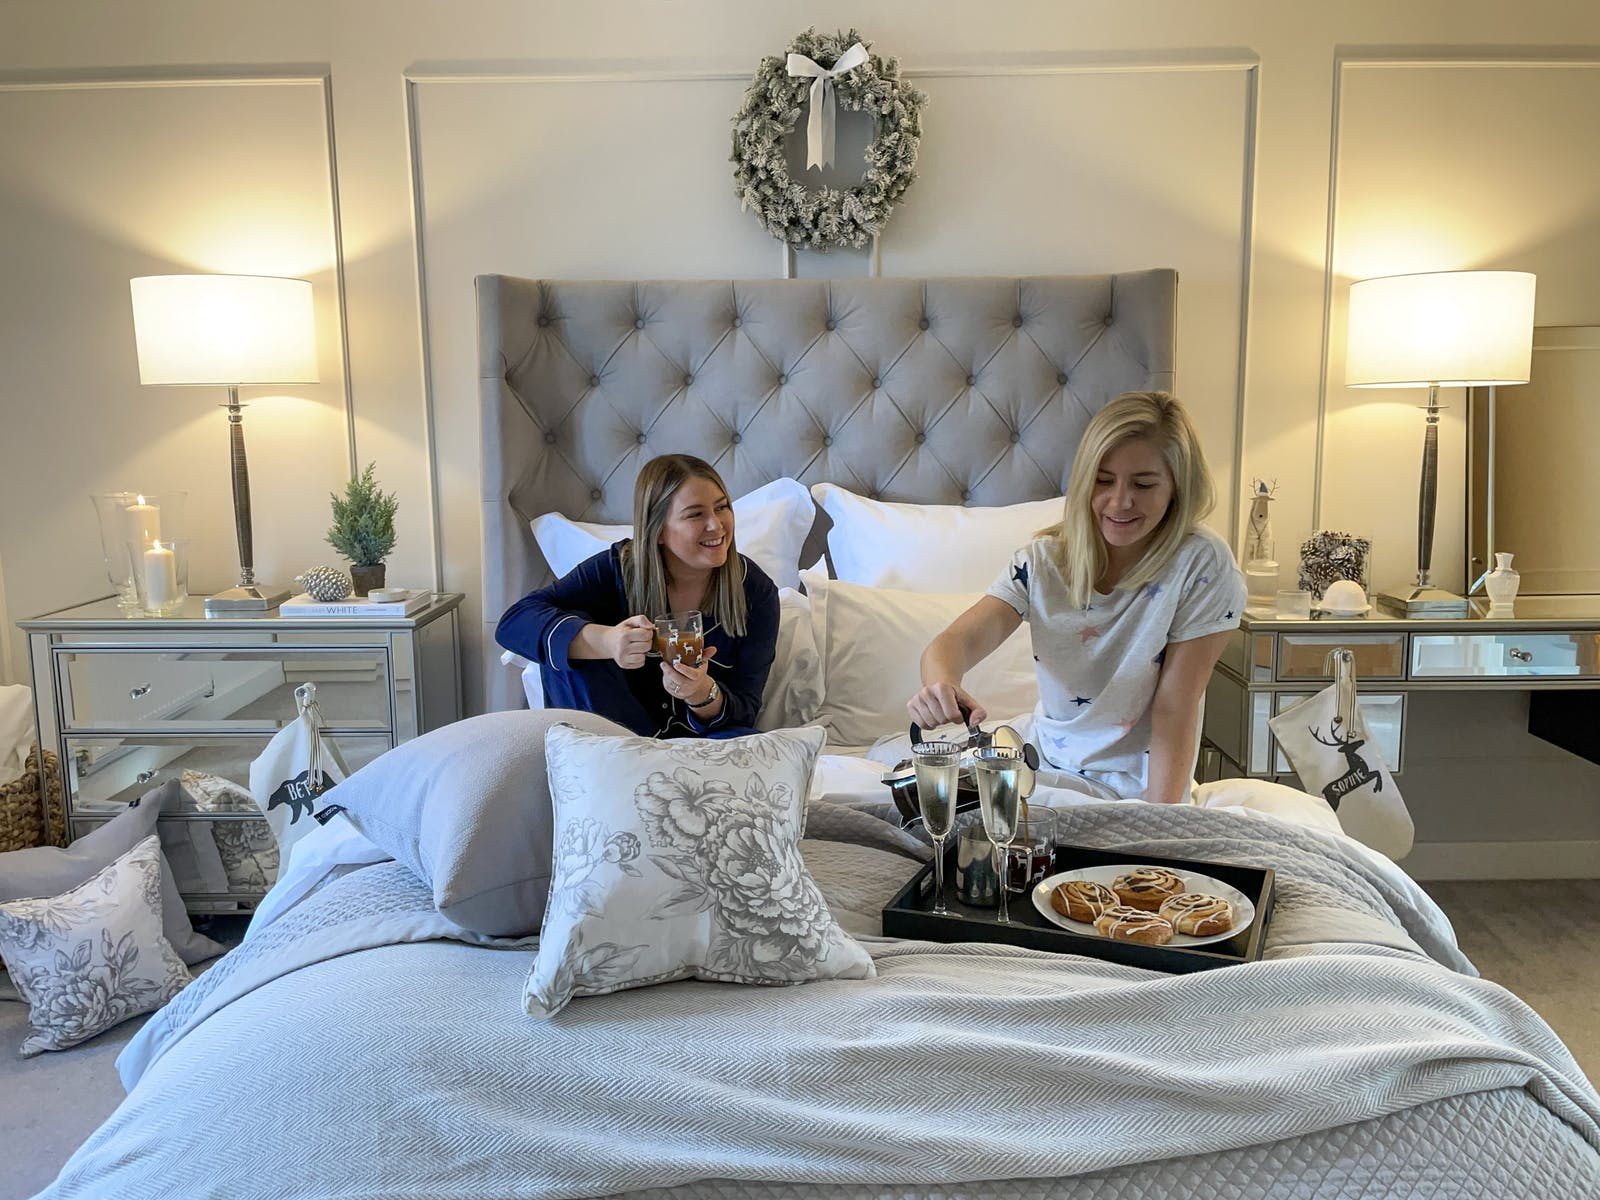 A blonde and brunette woman sitting on bed with breakfast pastries